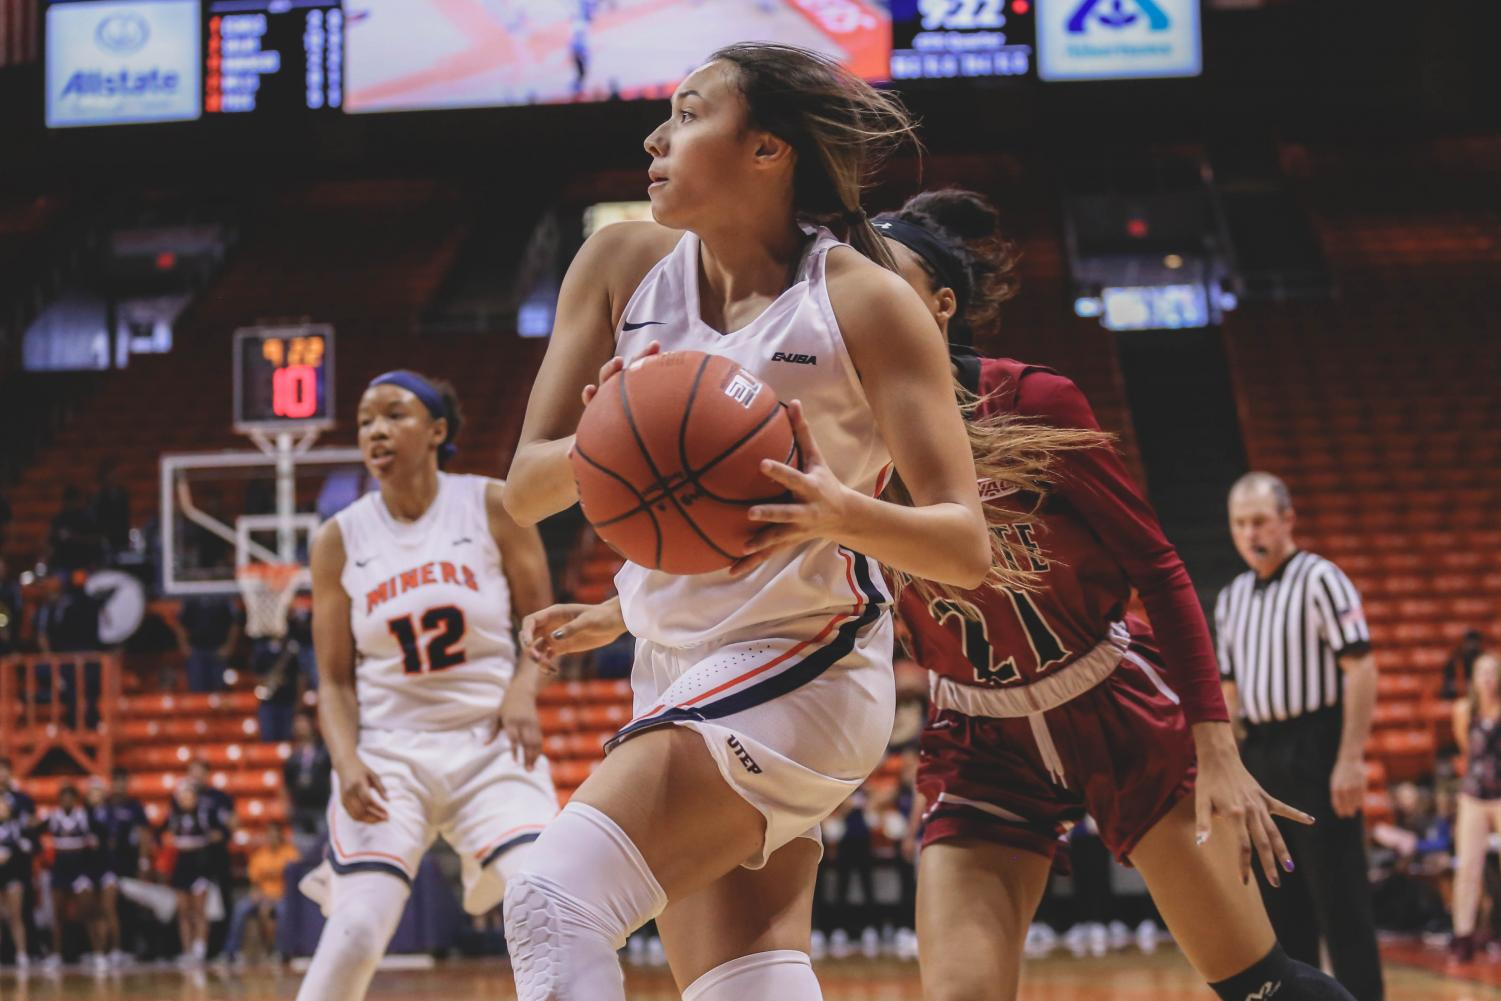 Sophomore+guard+Alexa+Hoy+drives+to+the+hole+at+a+game+against+the+NMSU+Aggies.+